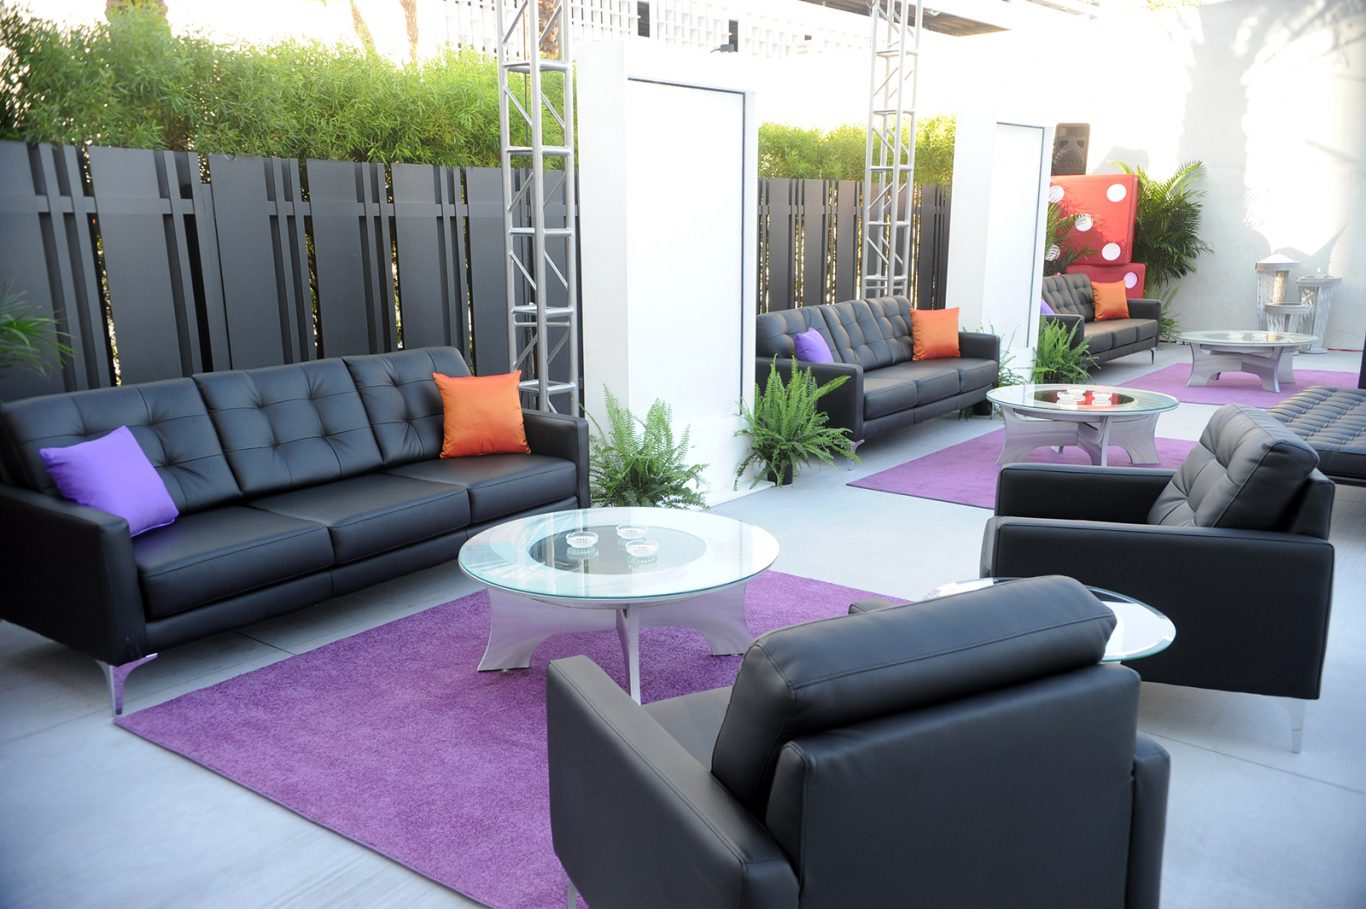 MEET Las Vegas outdoor meeting and event space